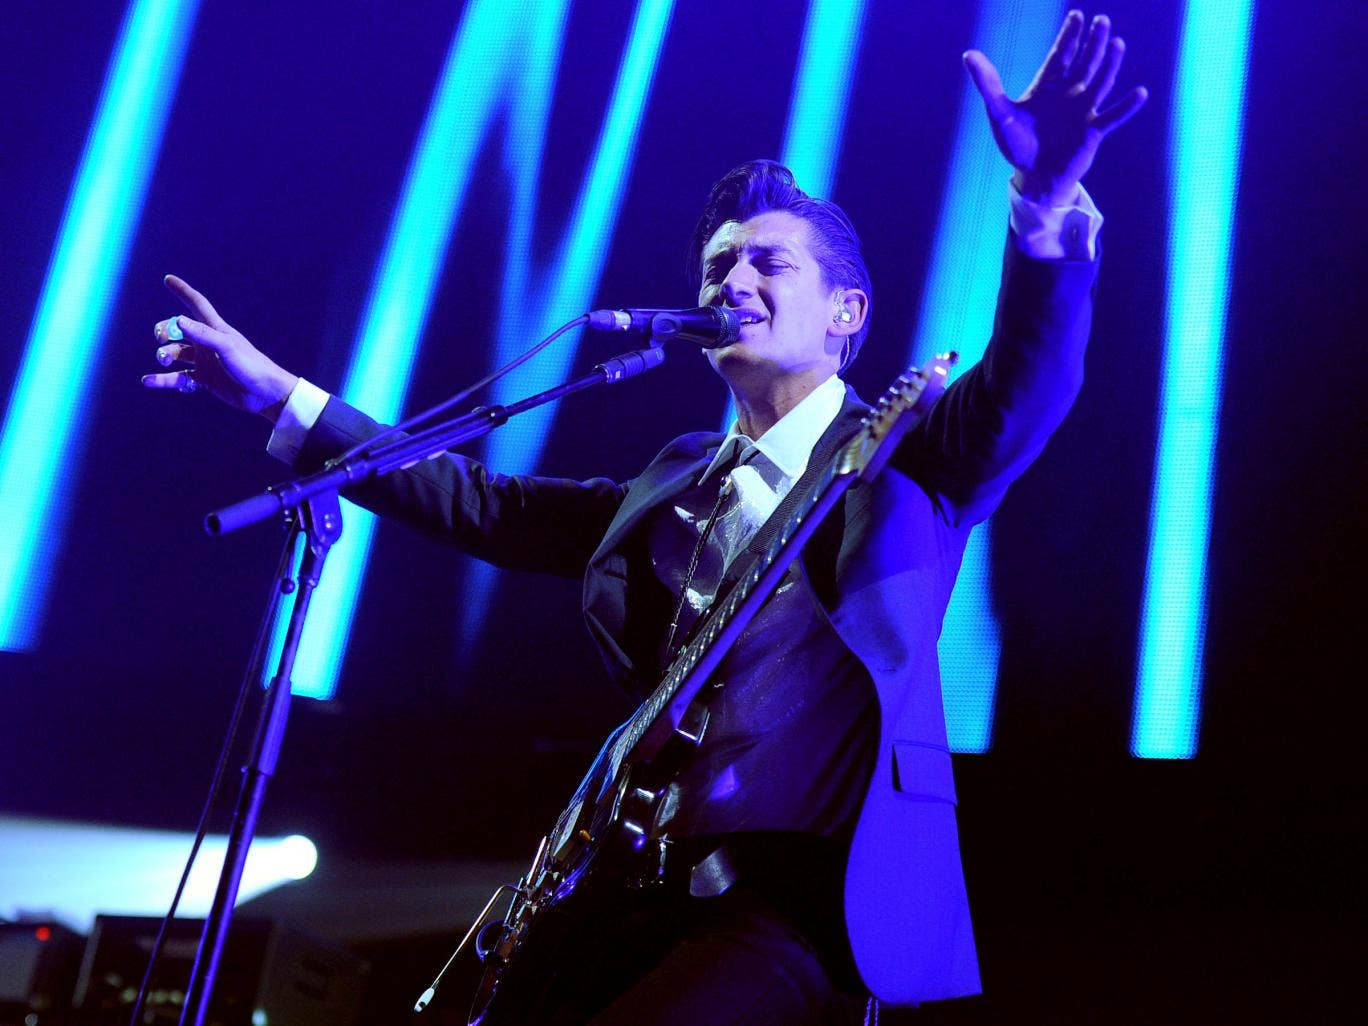 Musician Alex Turner of Arctic Monkeys performs onstage during The 24th Annual KROQ Almost Acoustic Christmas at The Shrine Auditorium on December 7, 2013 in Los Angeles, California.